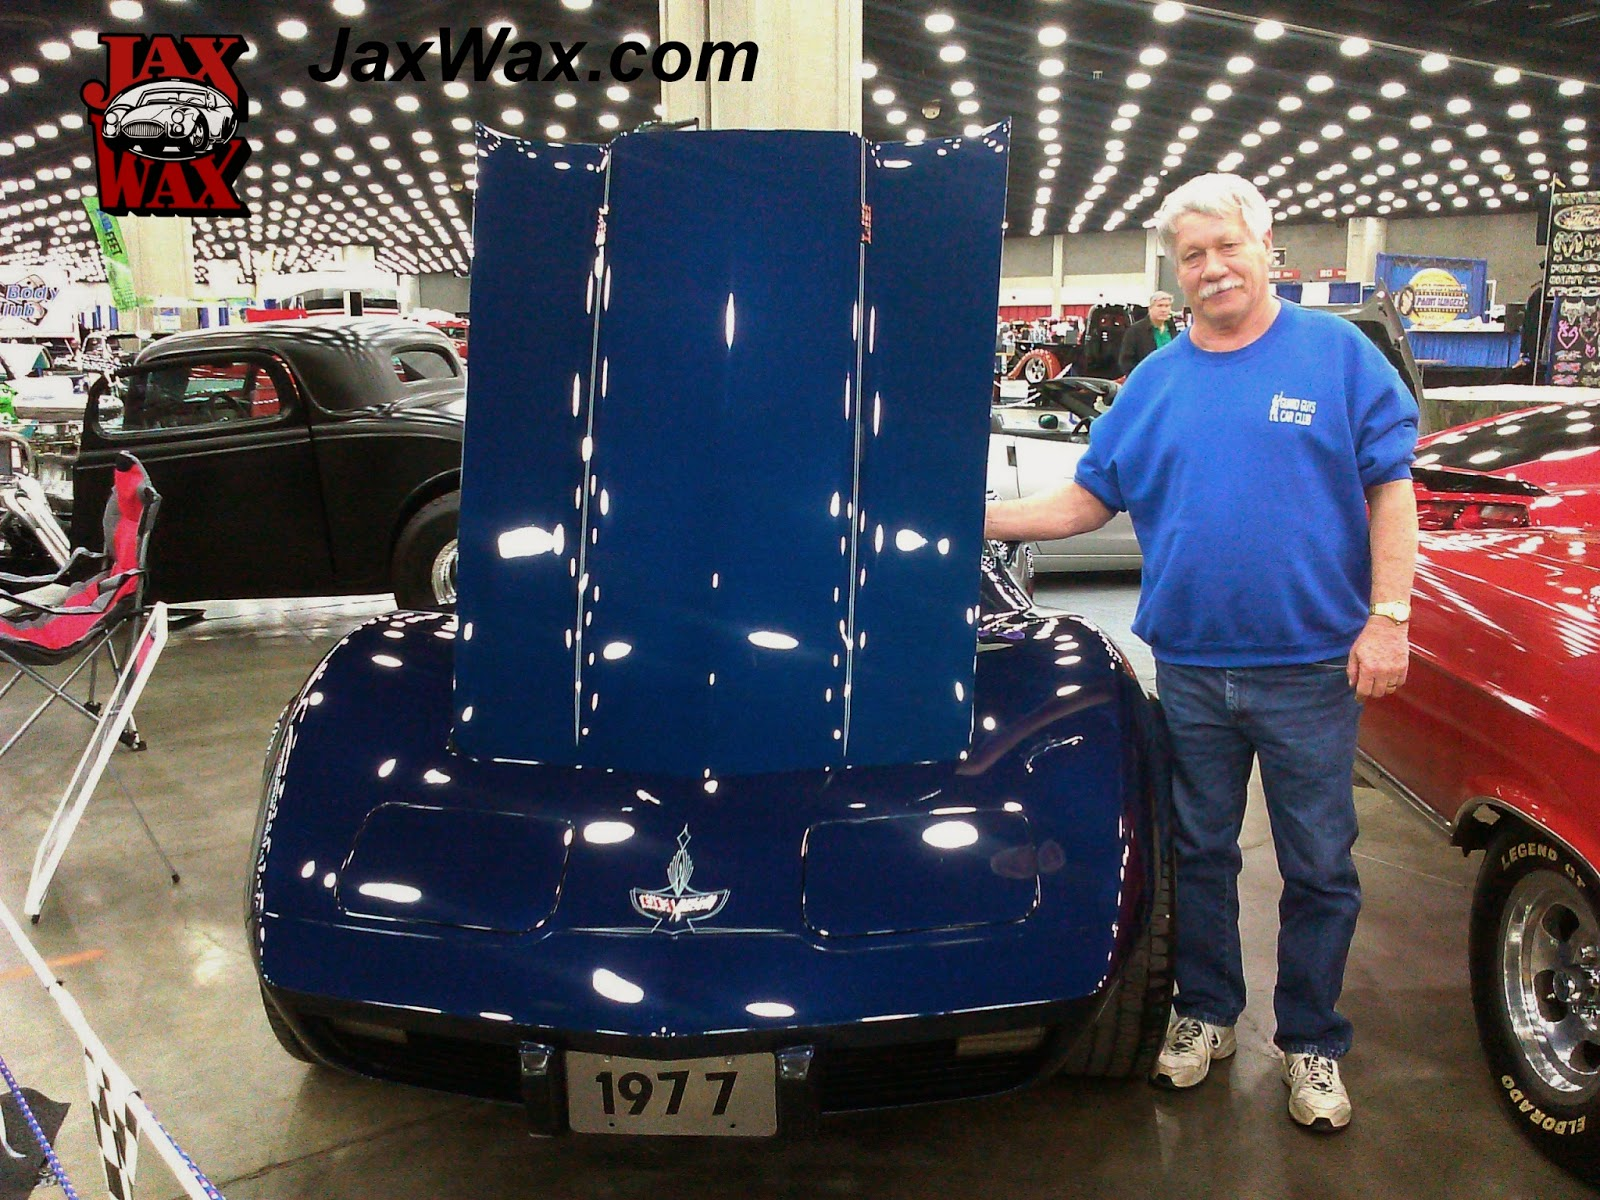 1977 Chevy Corvette Carl Casper Auto Show Jax Wax Customer